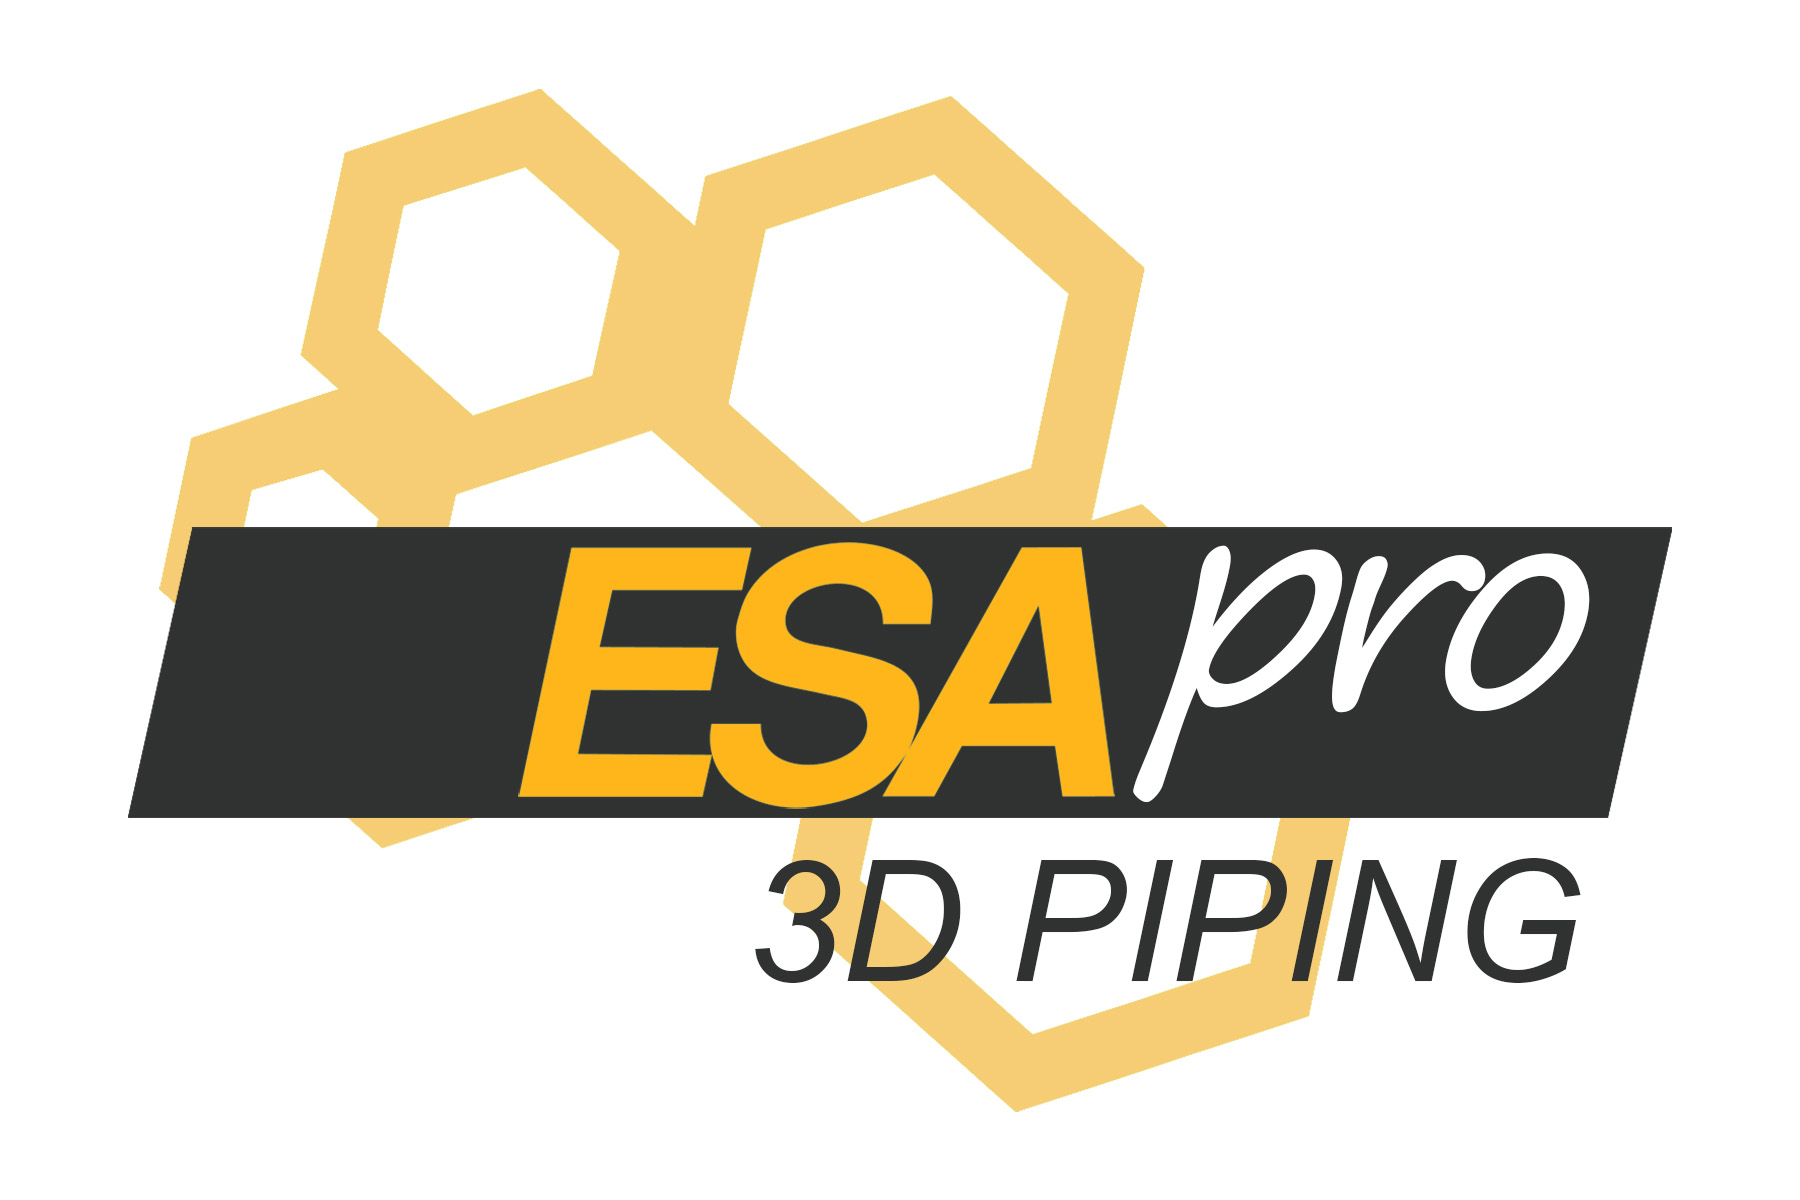 esapro-3d-piping-image-1